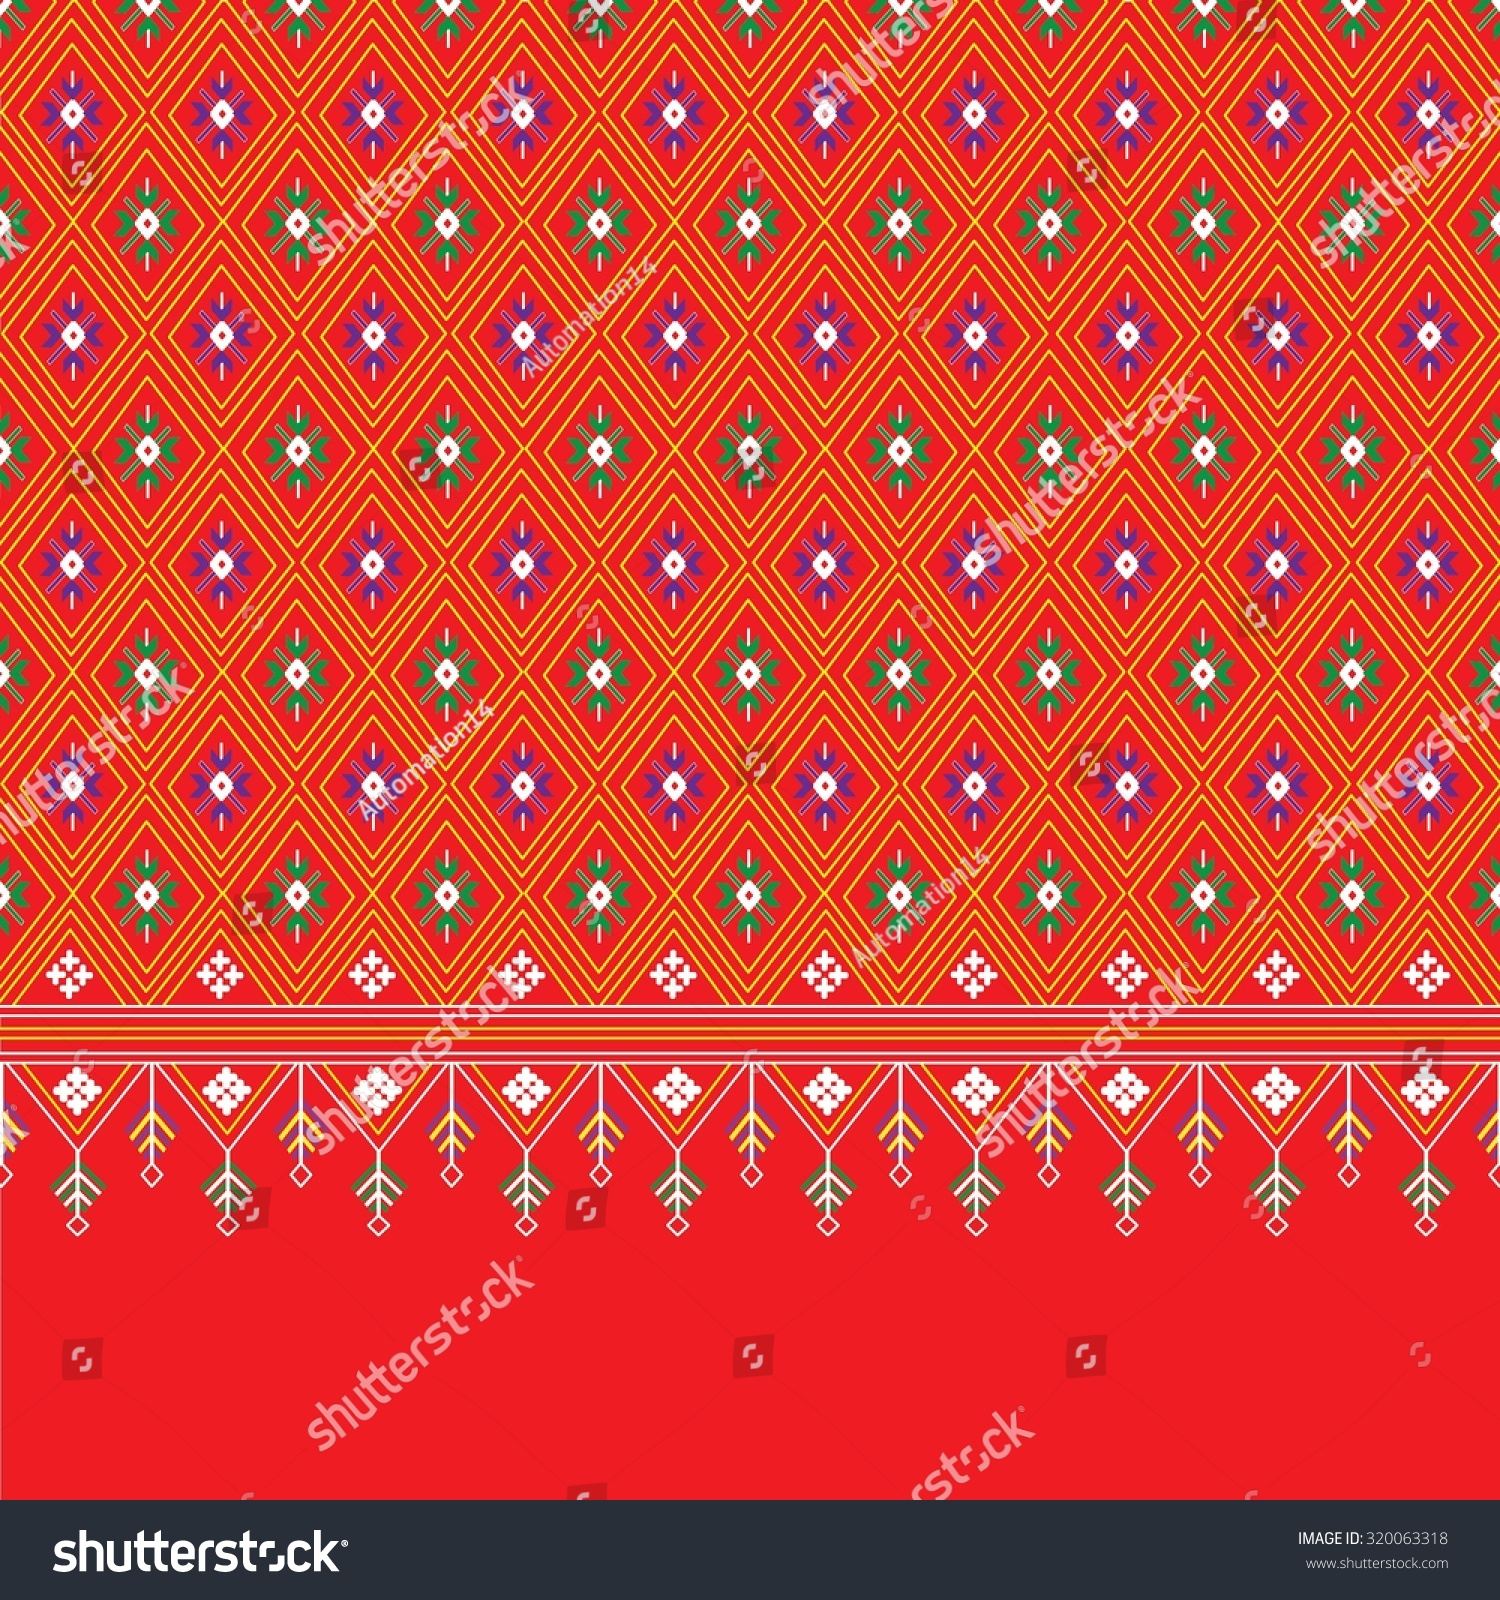 Geometric ethnic pattern design for background carpet